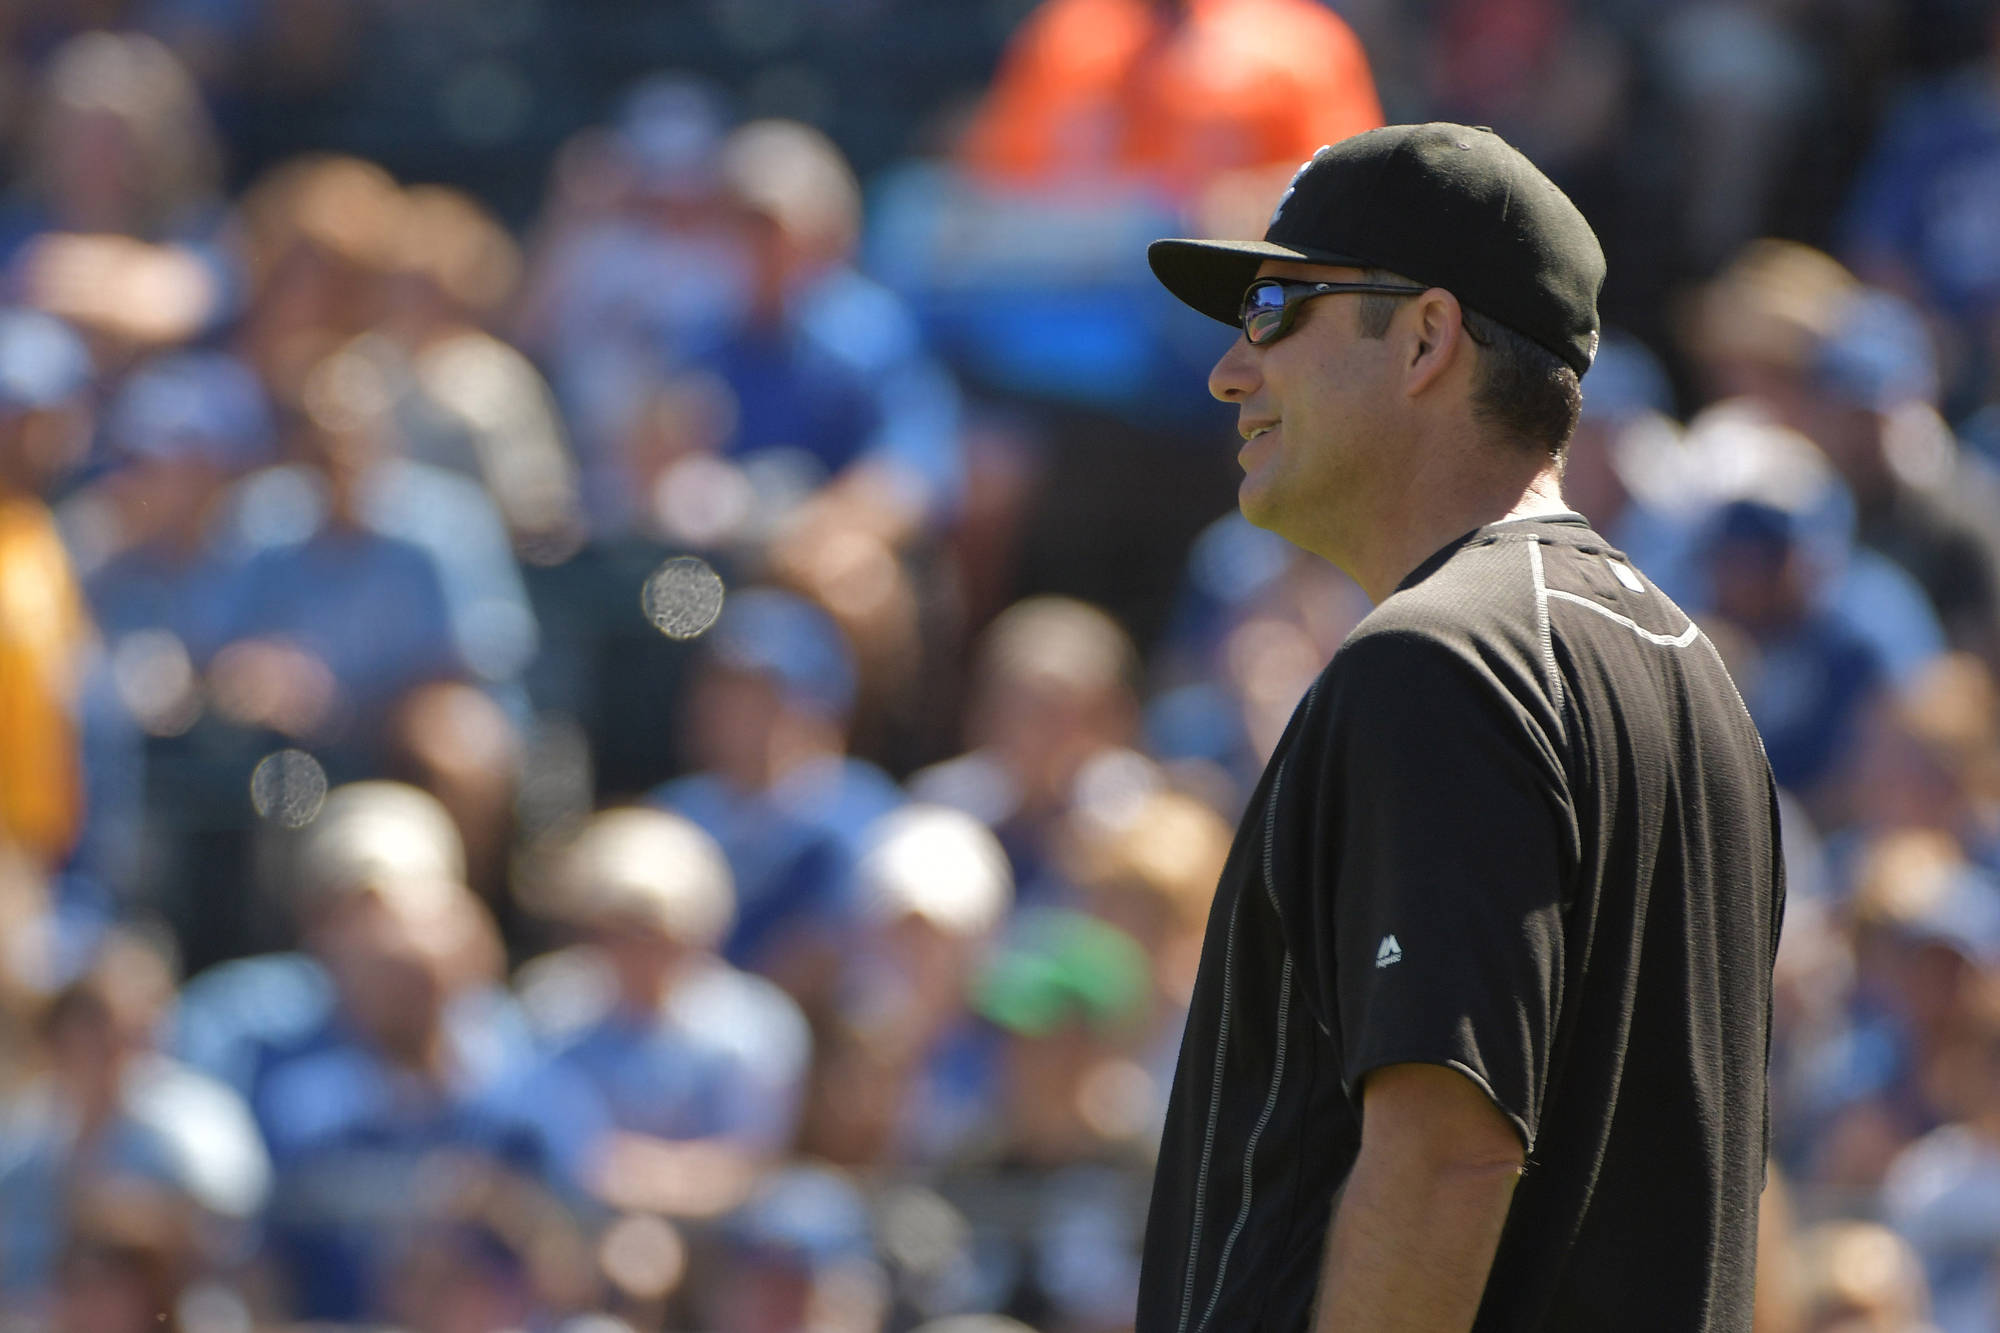 BREAKING: White Sox Have Decided To Keep Robin Ventura As Manager If He Wants To Return